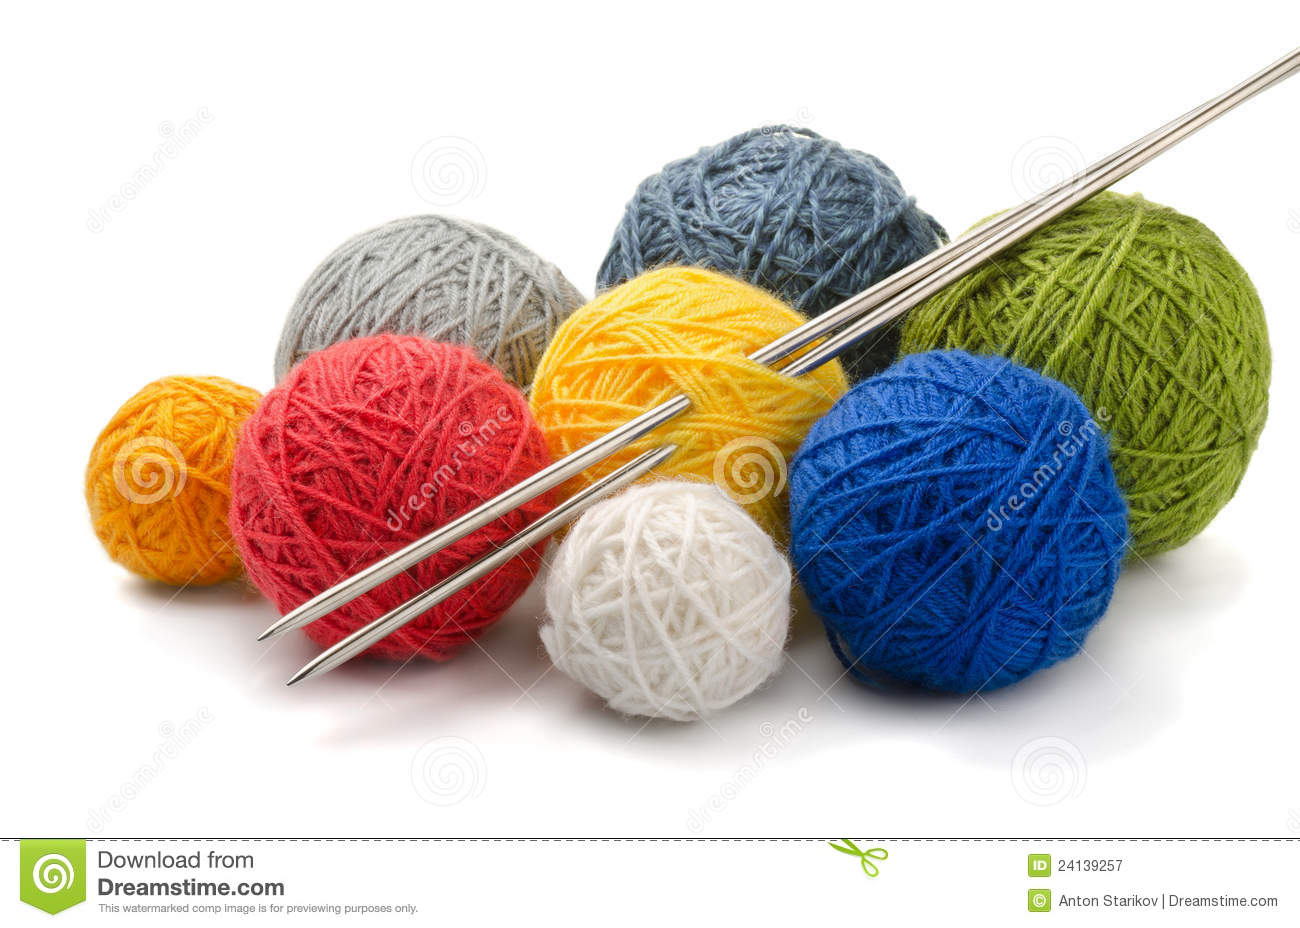 Crocheting Needles And Yarn : Yarn And Needles Royalty Free Stock Photography - Image: 24139257